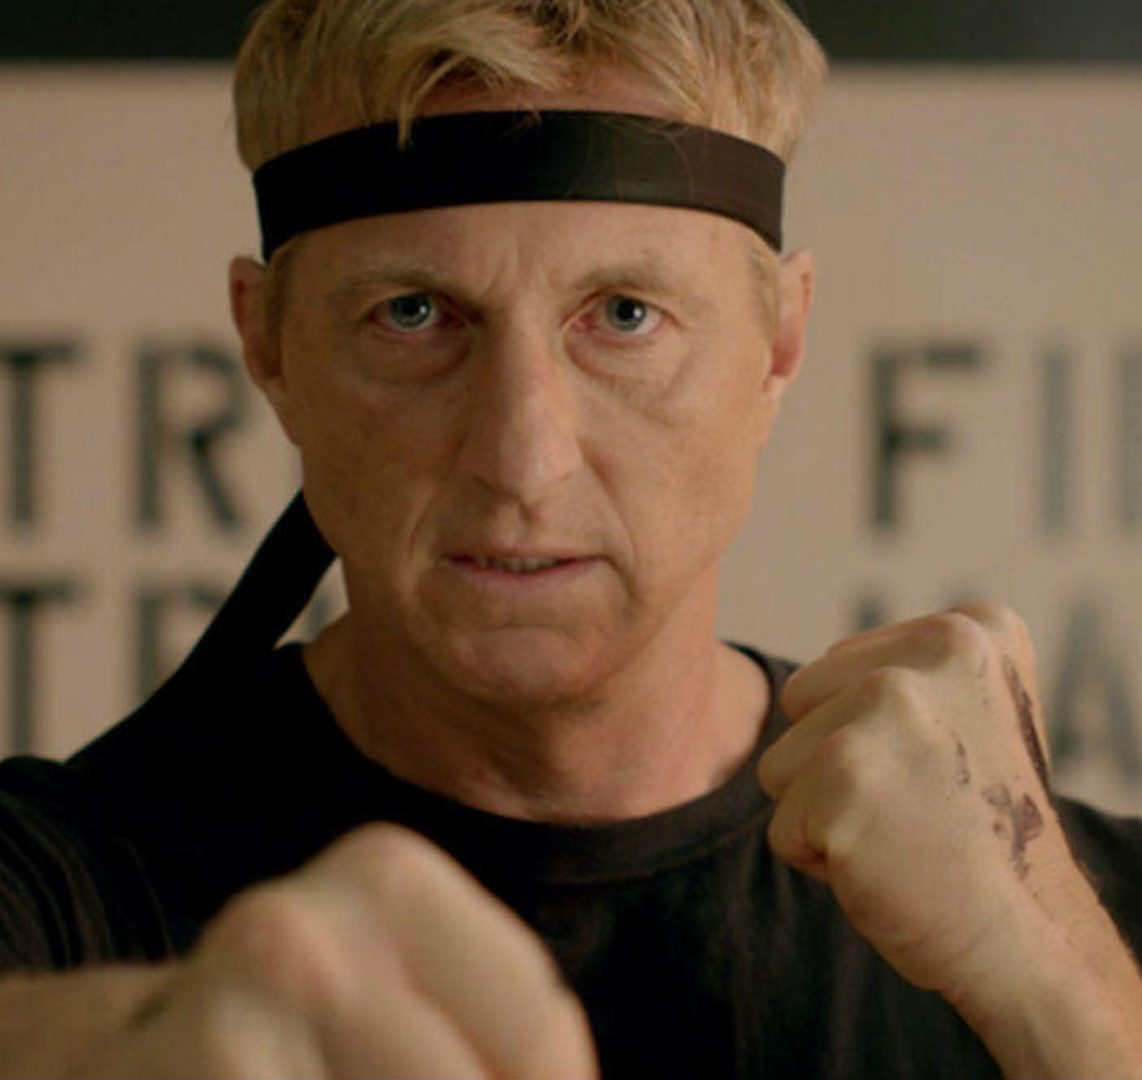 1 46 e1605191404950 30 Things You Might Not Have Known About Cobra Kai